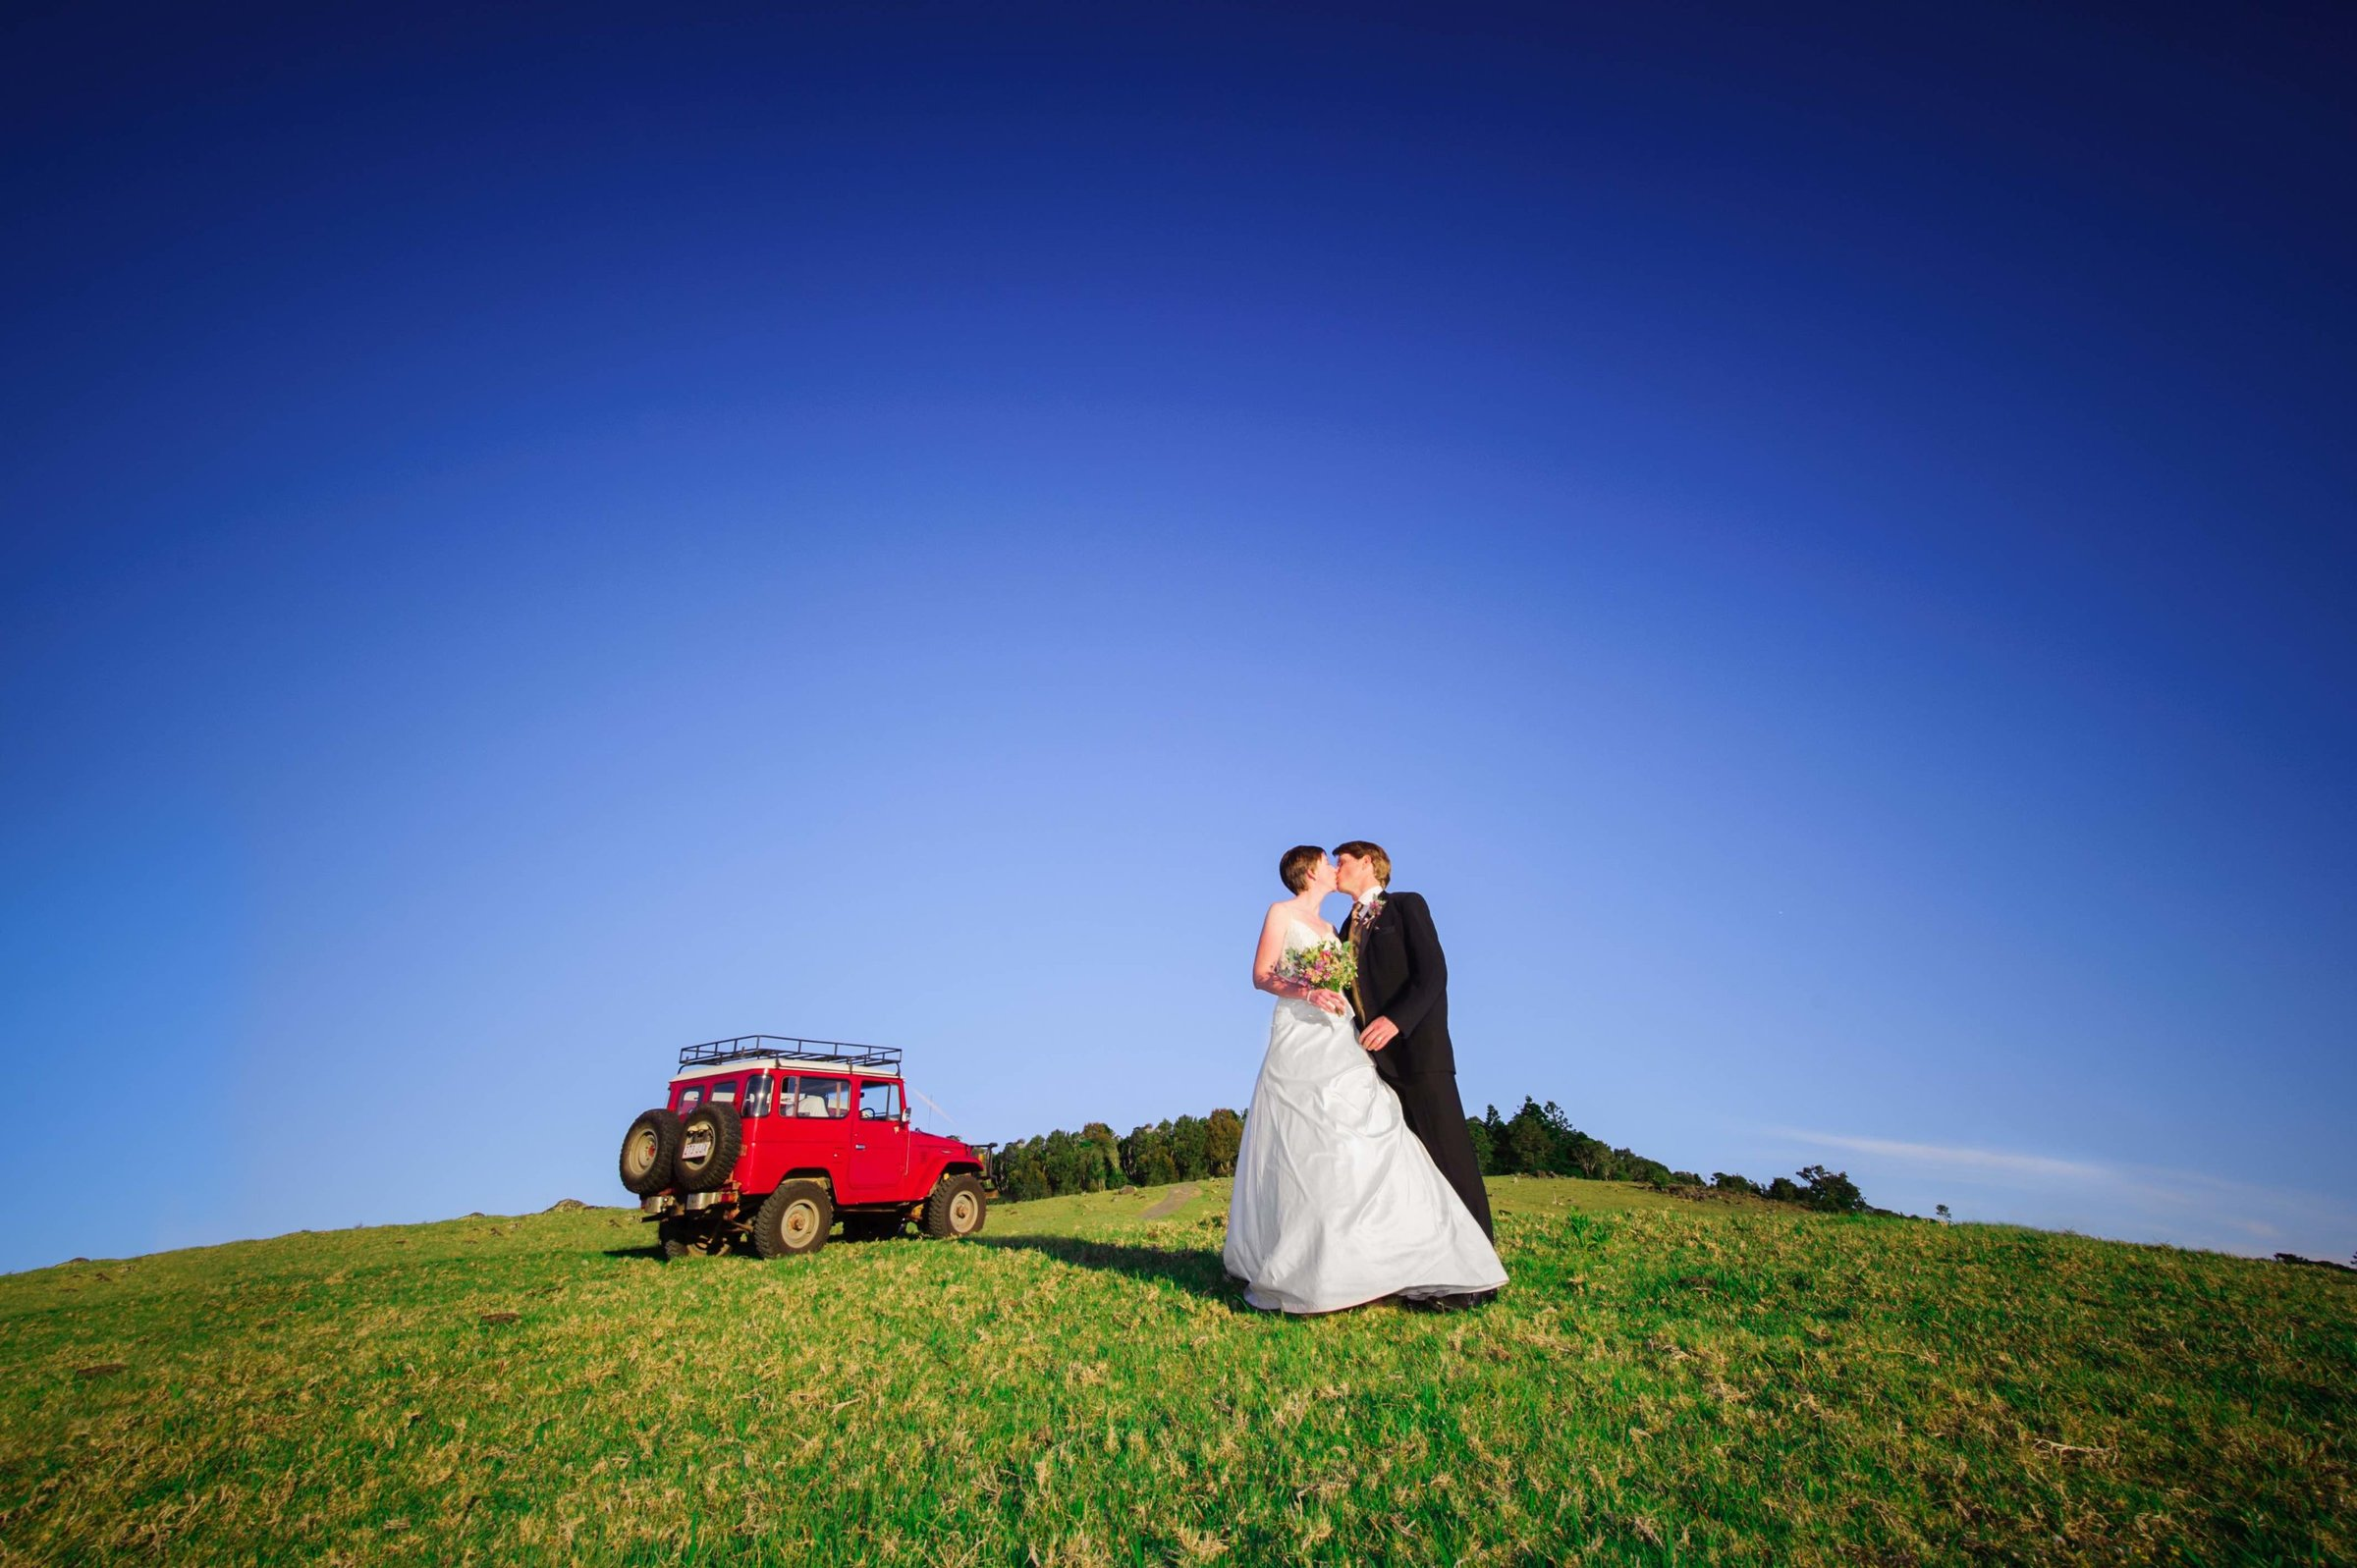 Lukes Bluff Oreillys Sunset Wedding Photography Anna Osetroff